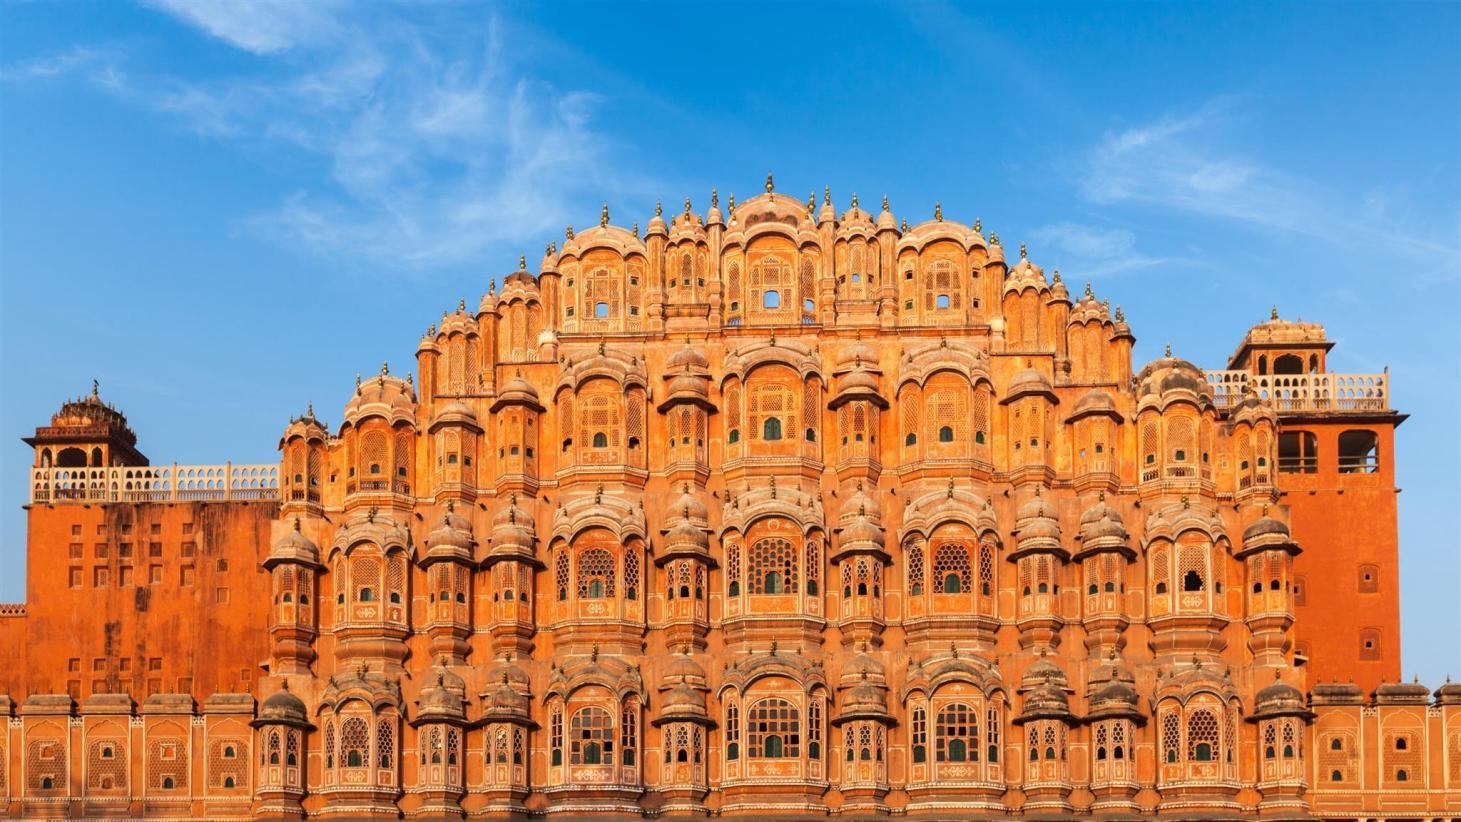 10 Best Jaipur Hotels Hd Photos Reviews Of Hotels In Jaipur India